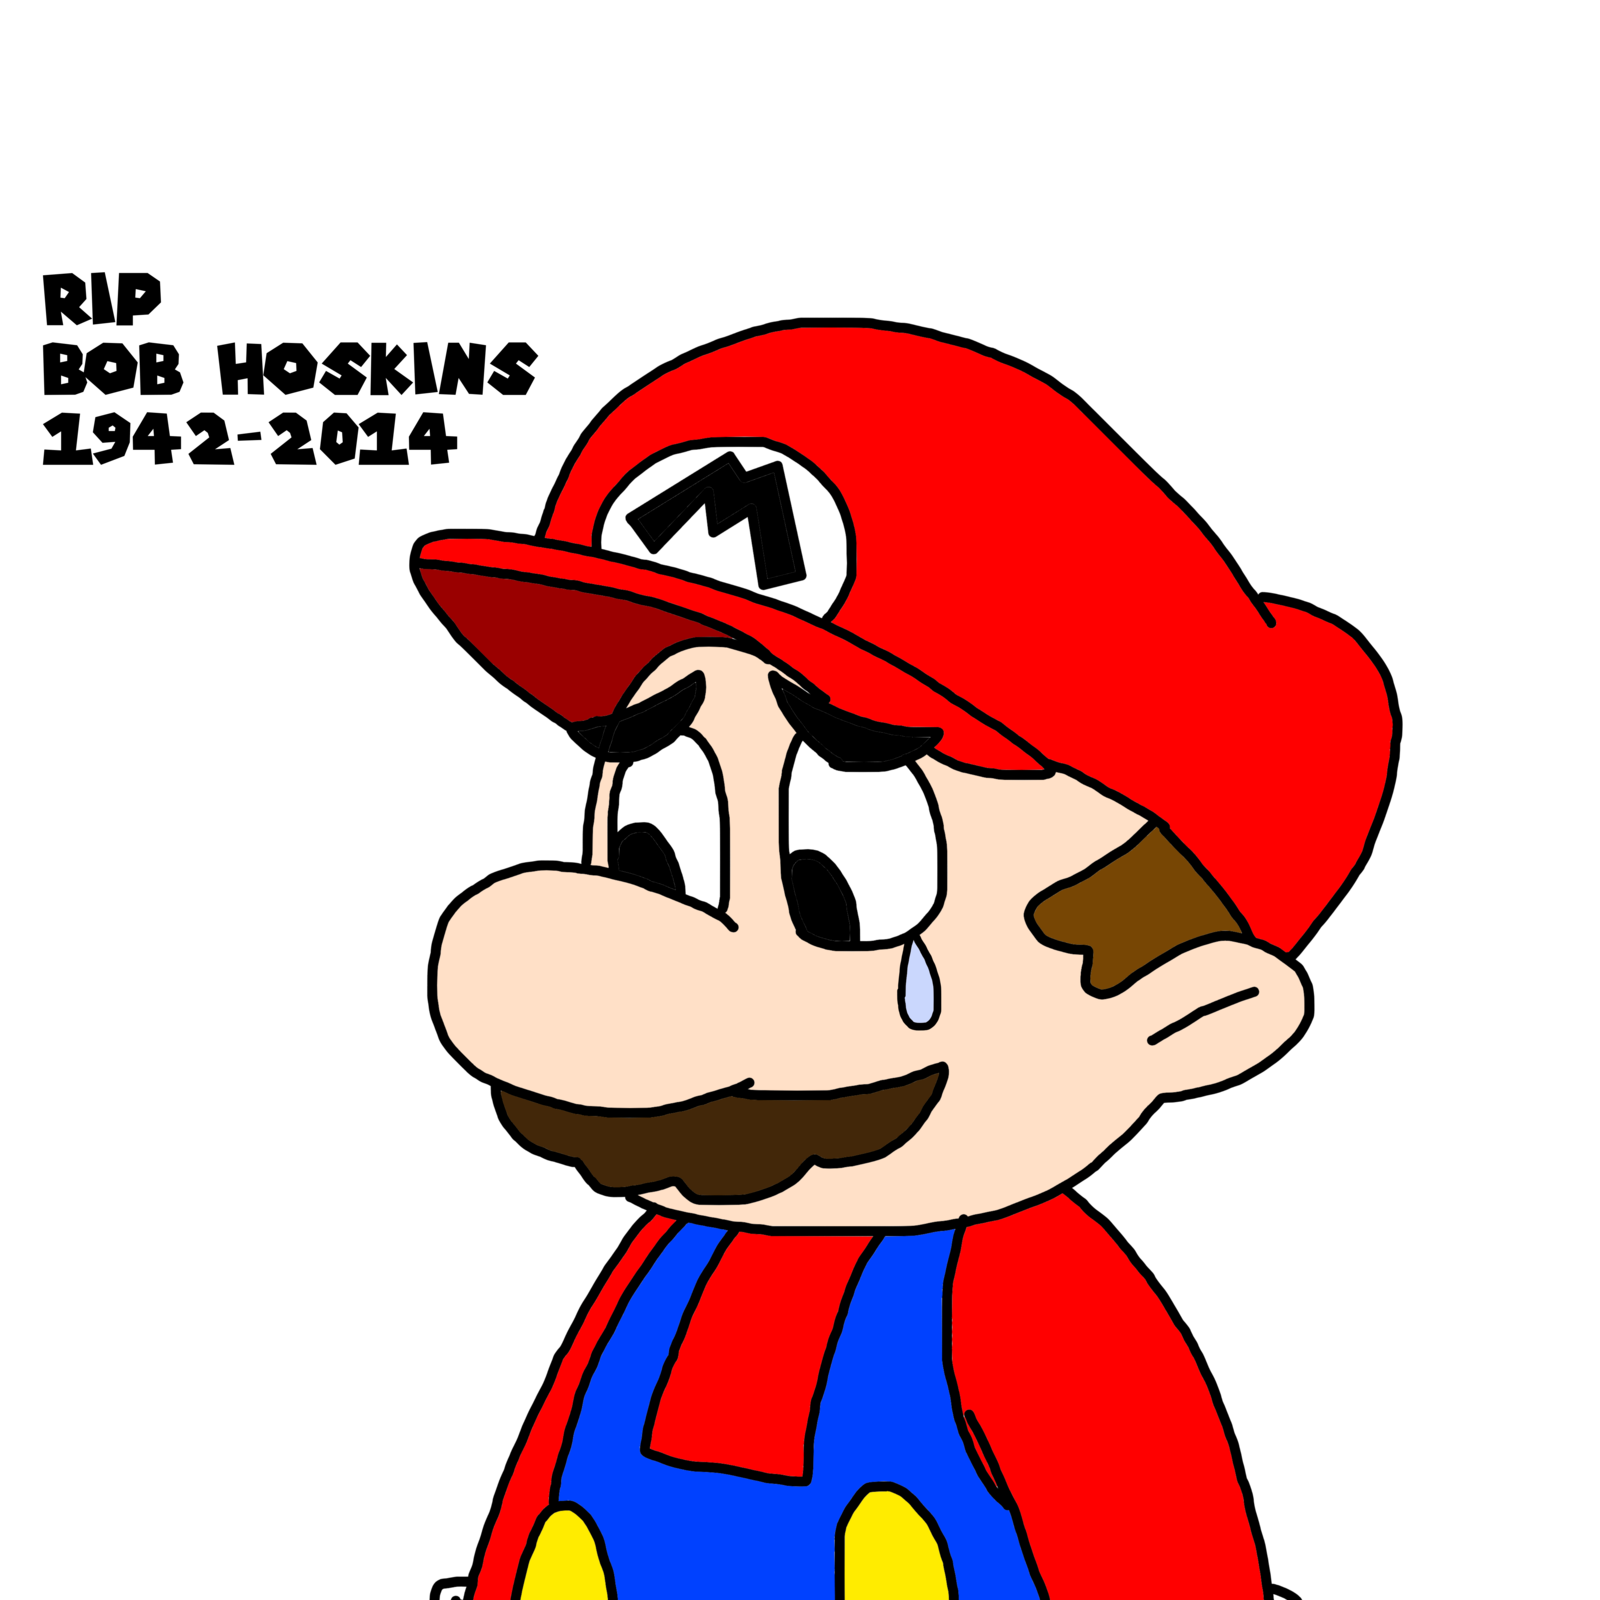 Sad mario png. Makes a tribute to